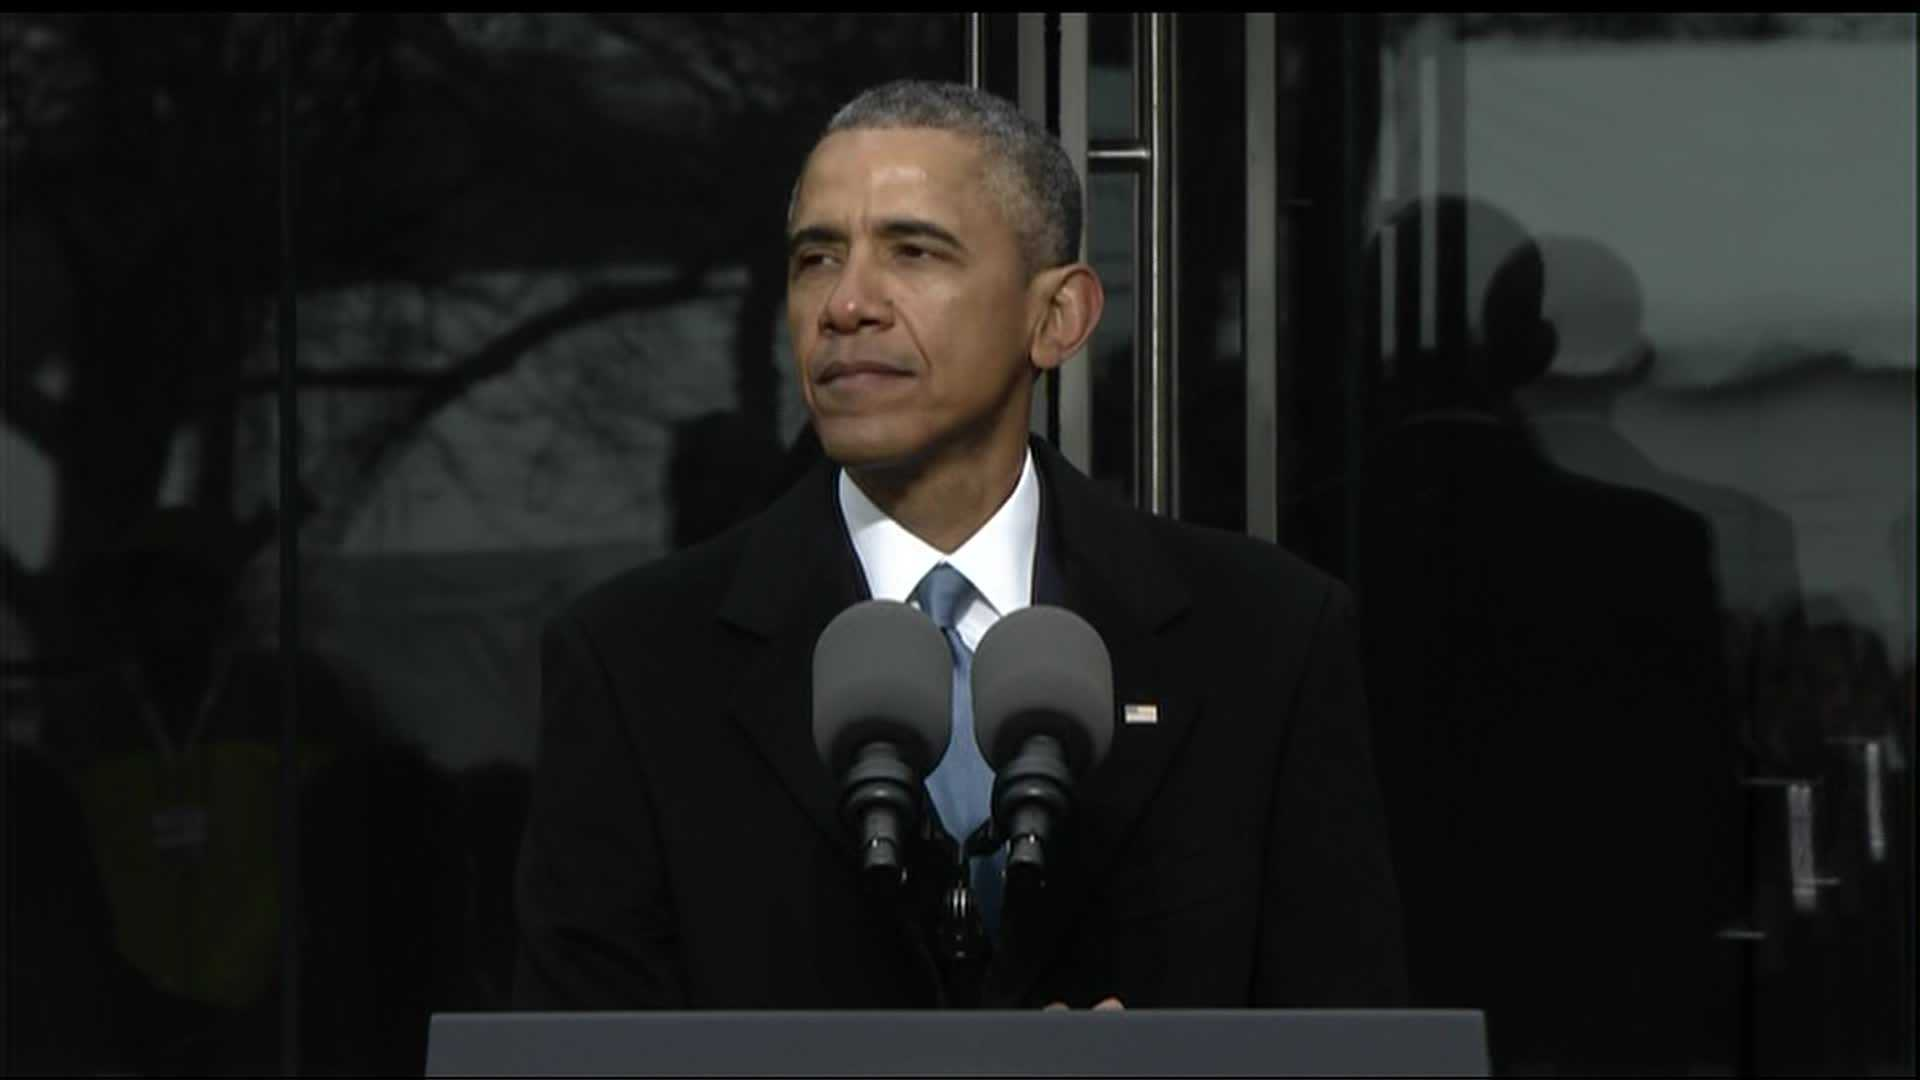 President Obama speaks at the dedication of the Kennedy Senate Institute on March 30, 2015